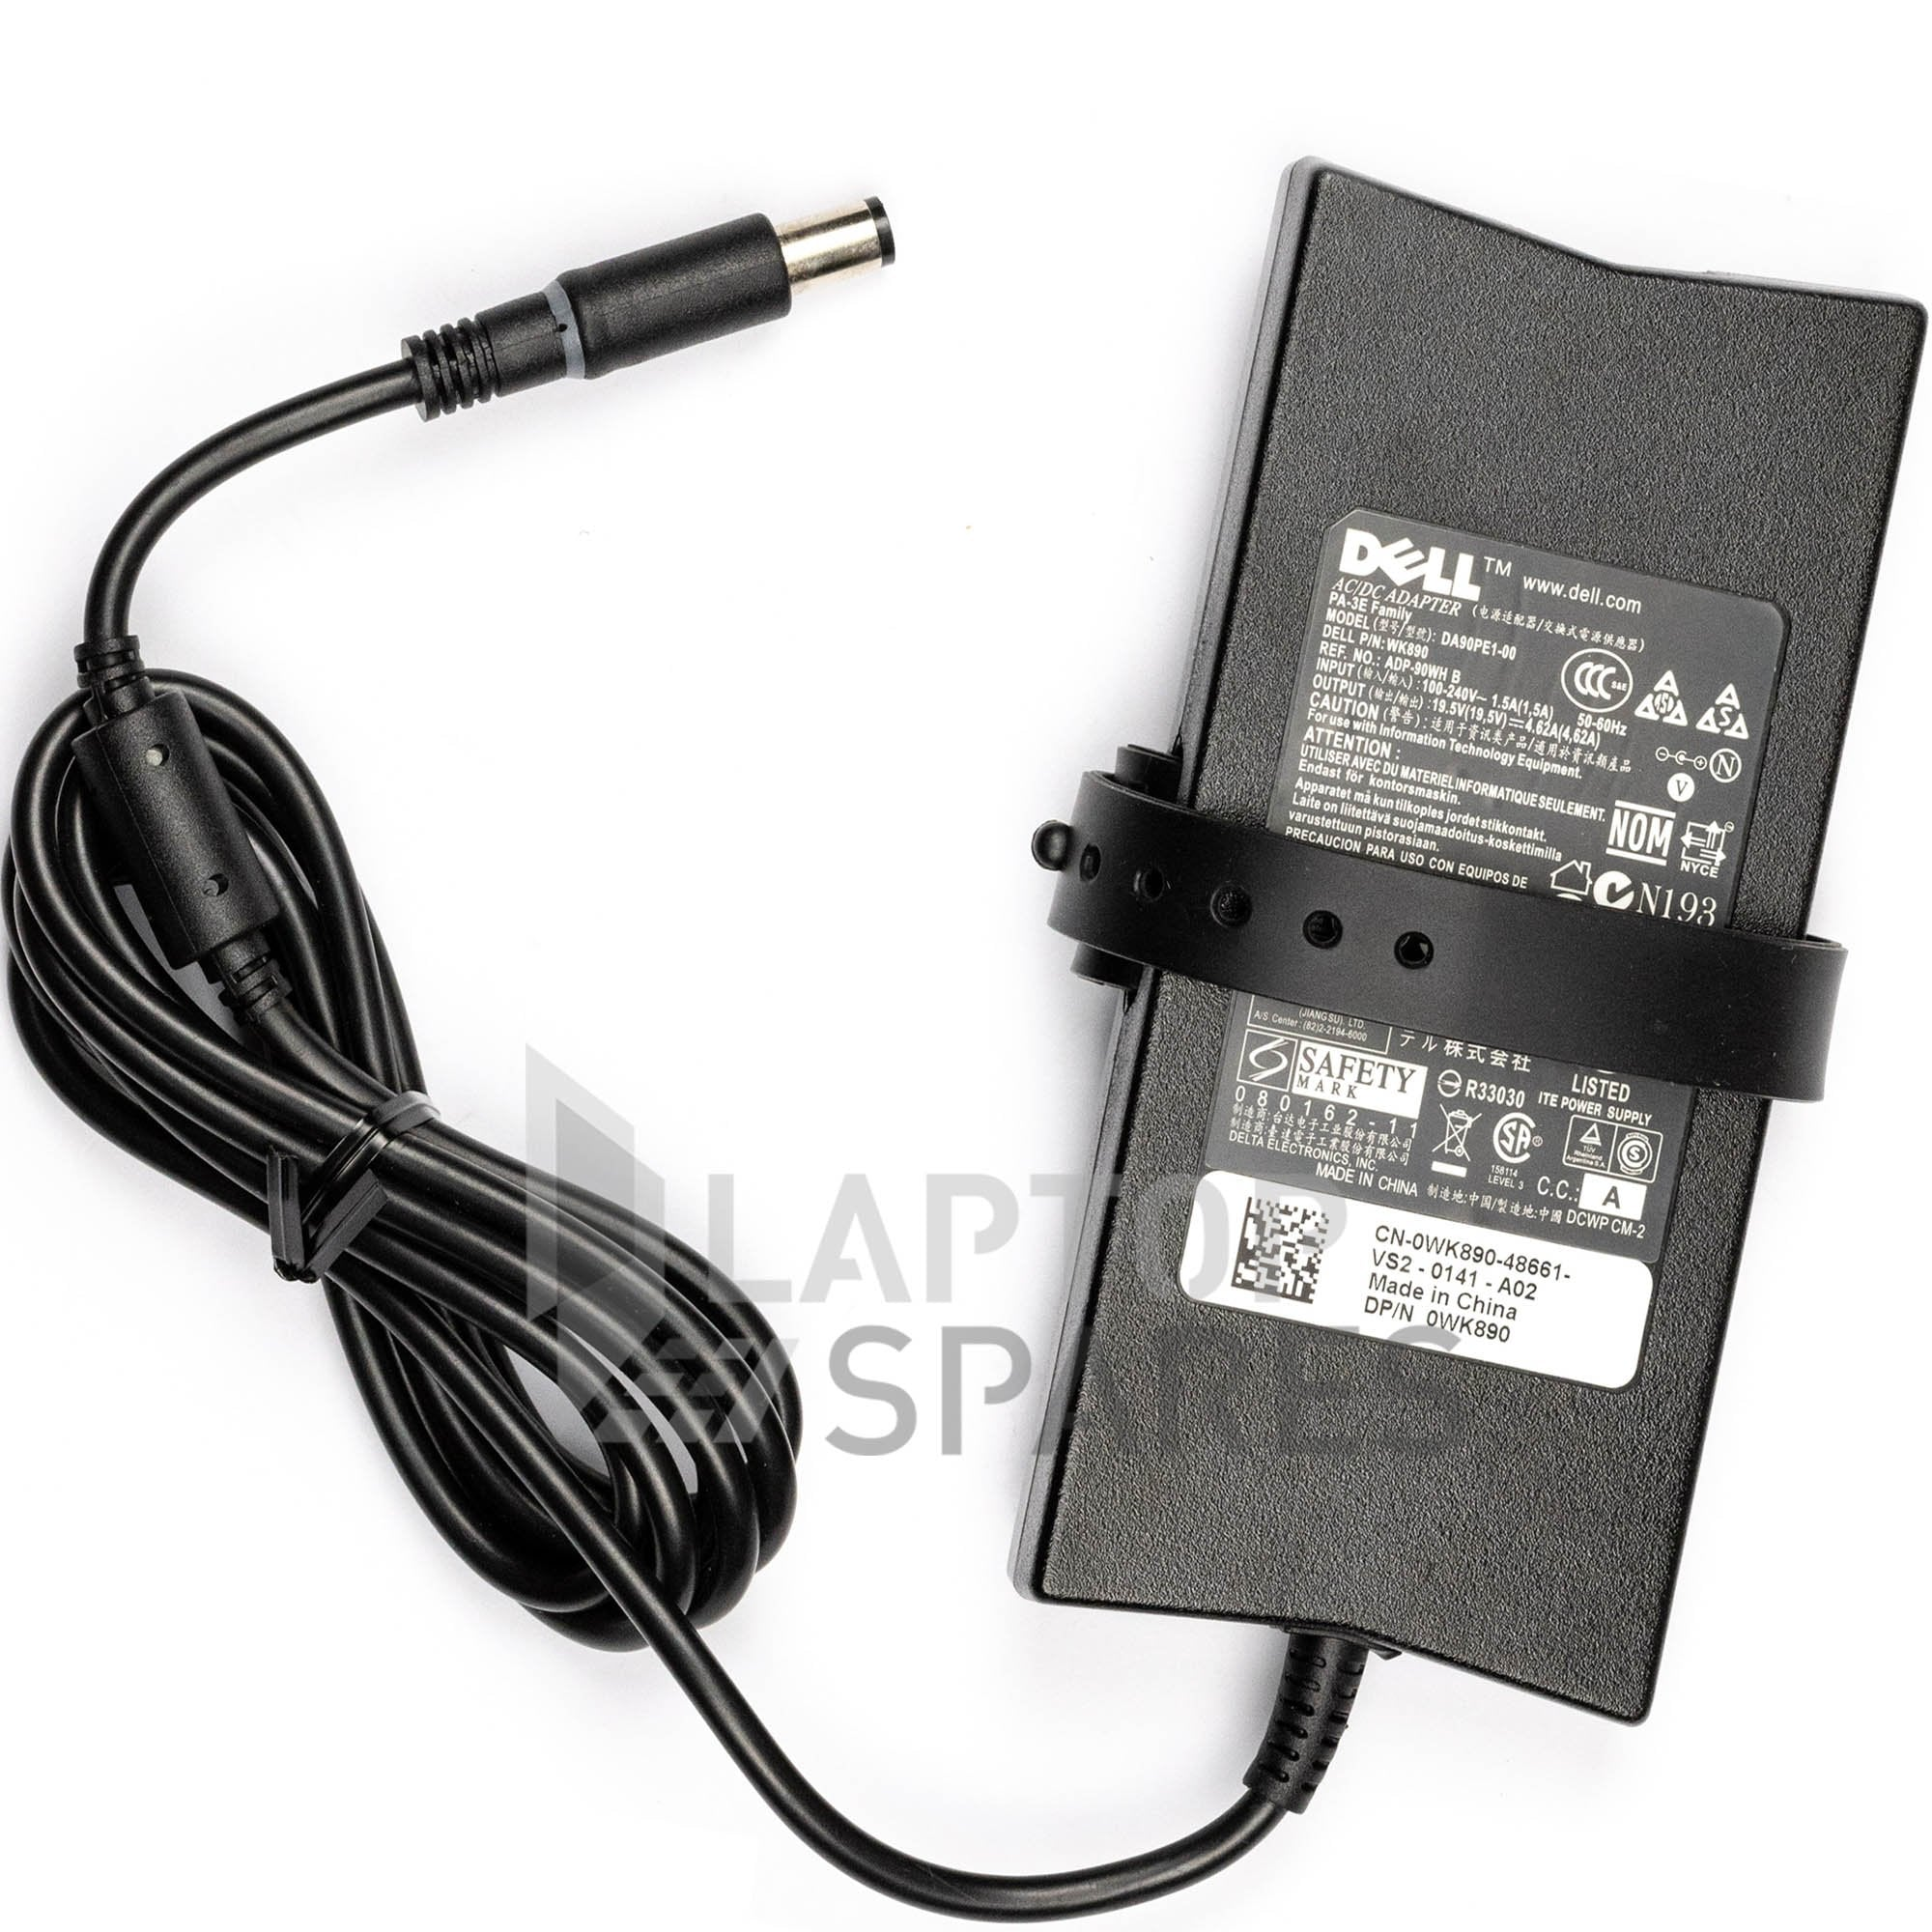 Dell Inspiron 6400 E1505 640m E1405 Laptop Slim AC Adapter Charger